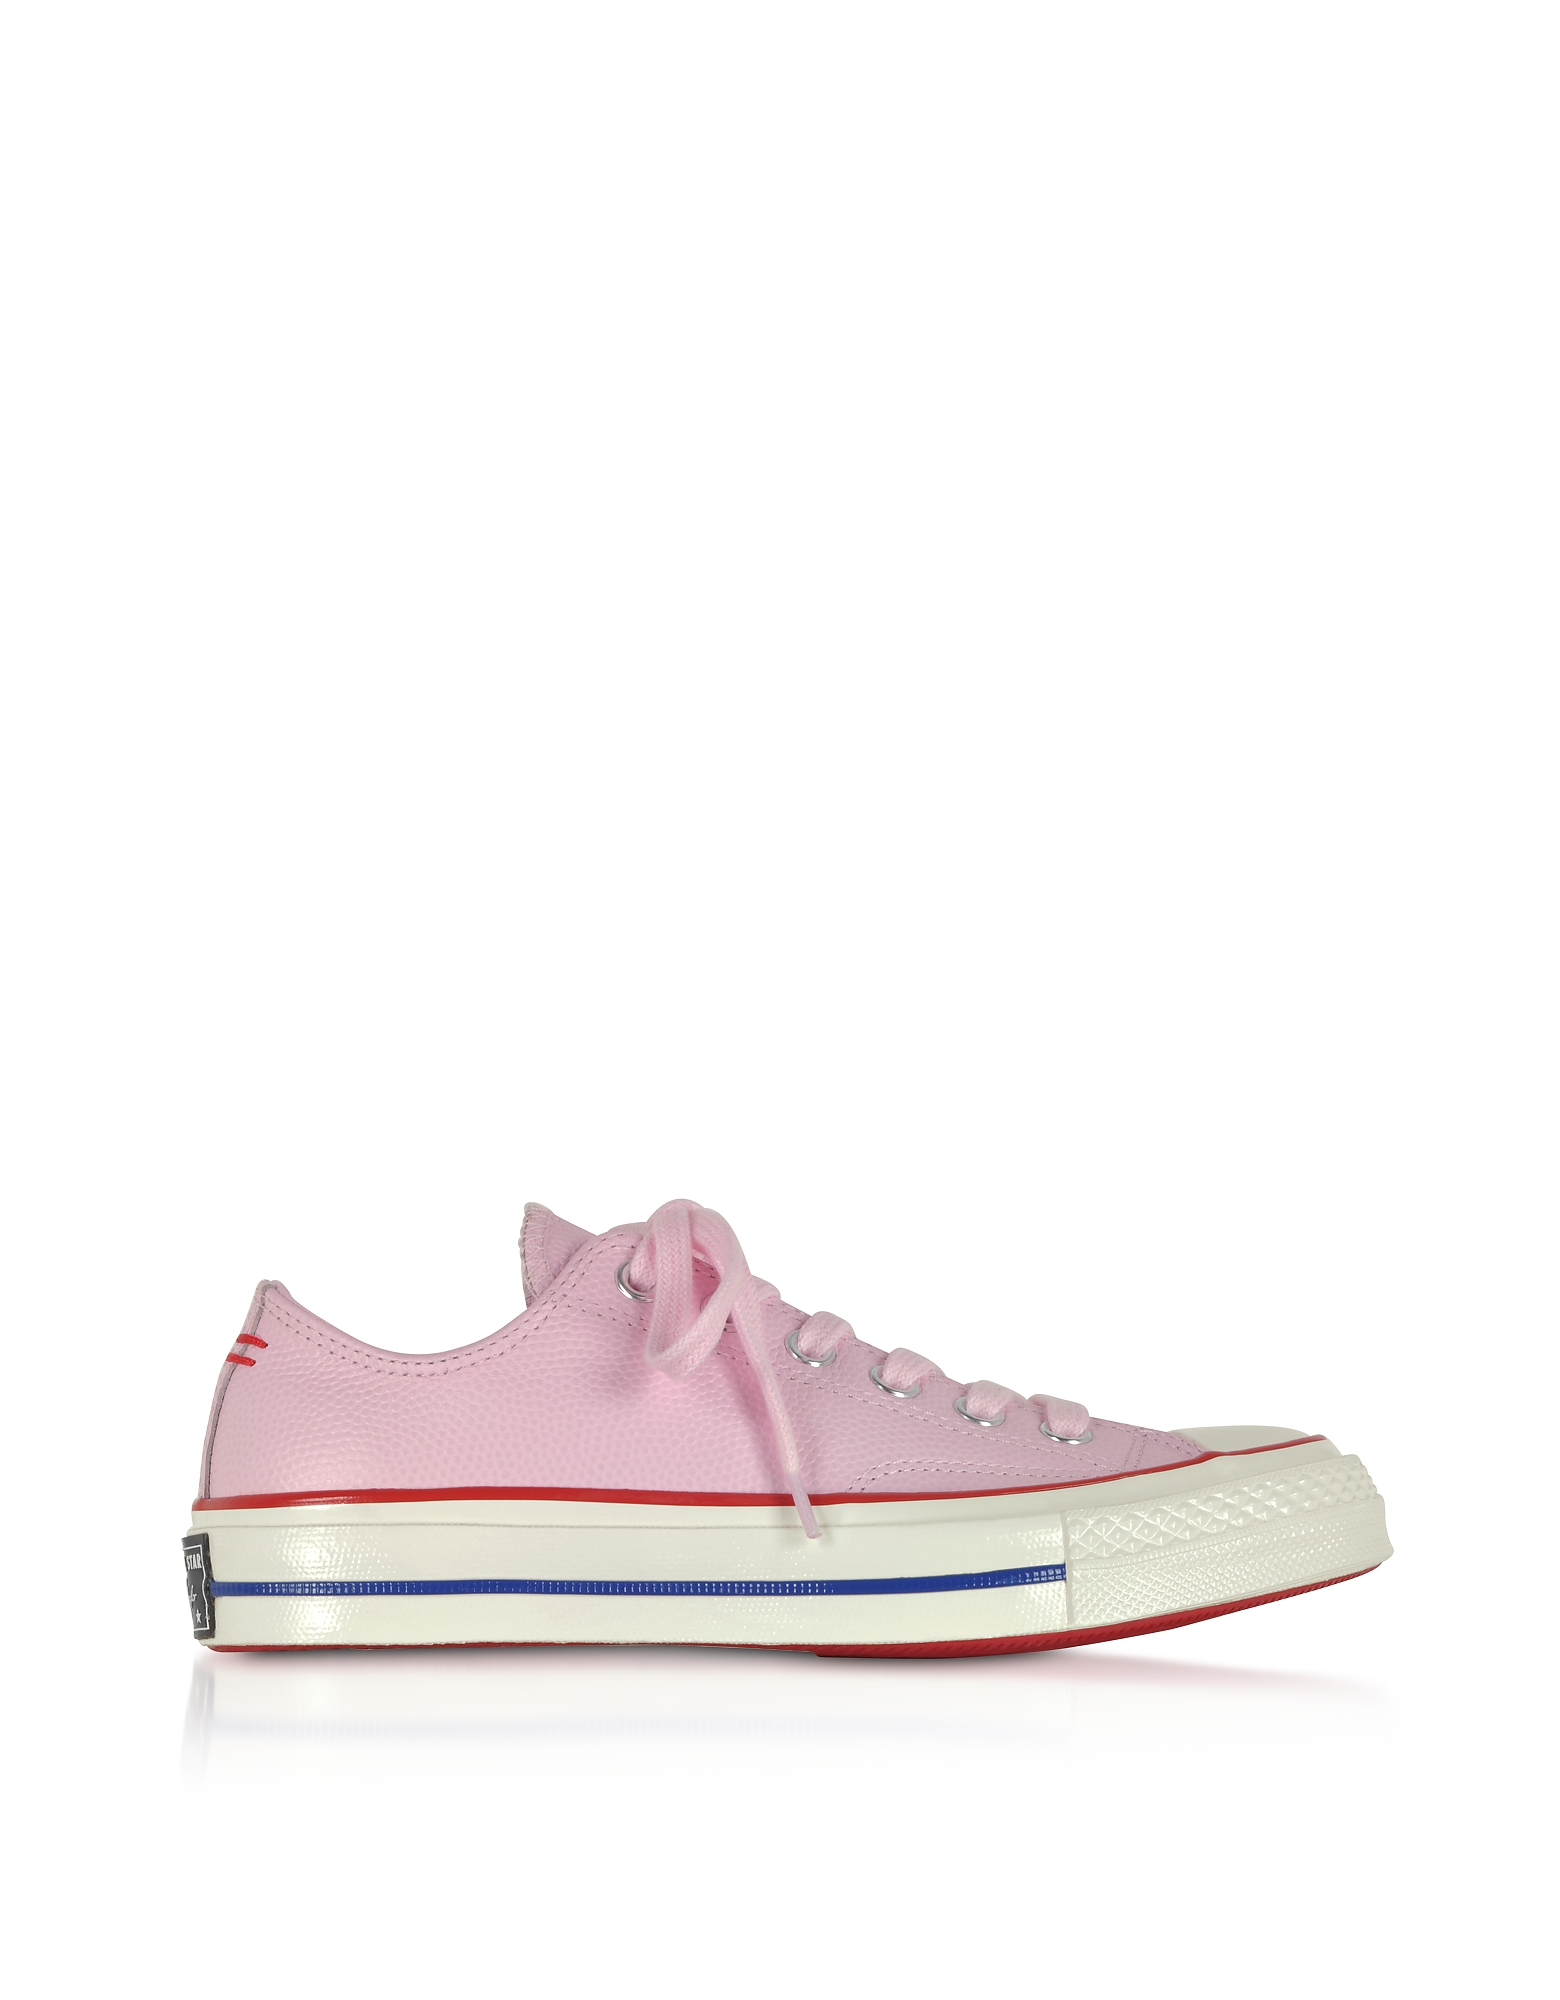 Converse Limited Edition Designer Shoes, Chuck 70 Pastel Pink Women